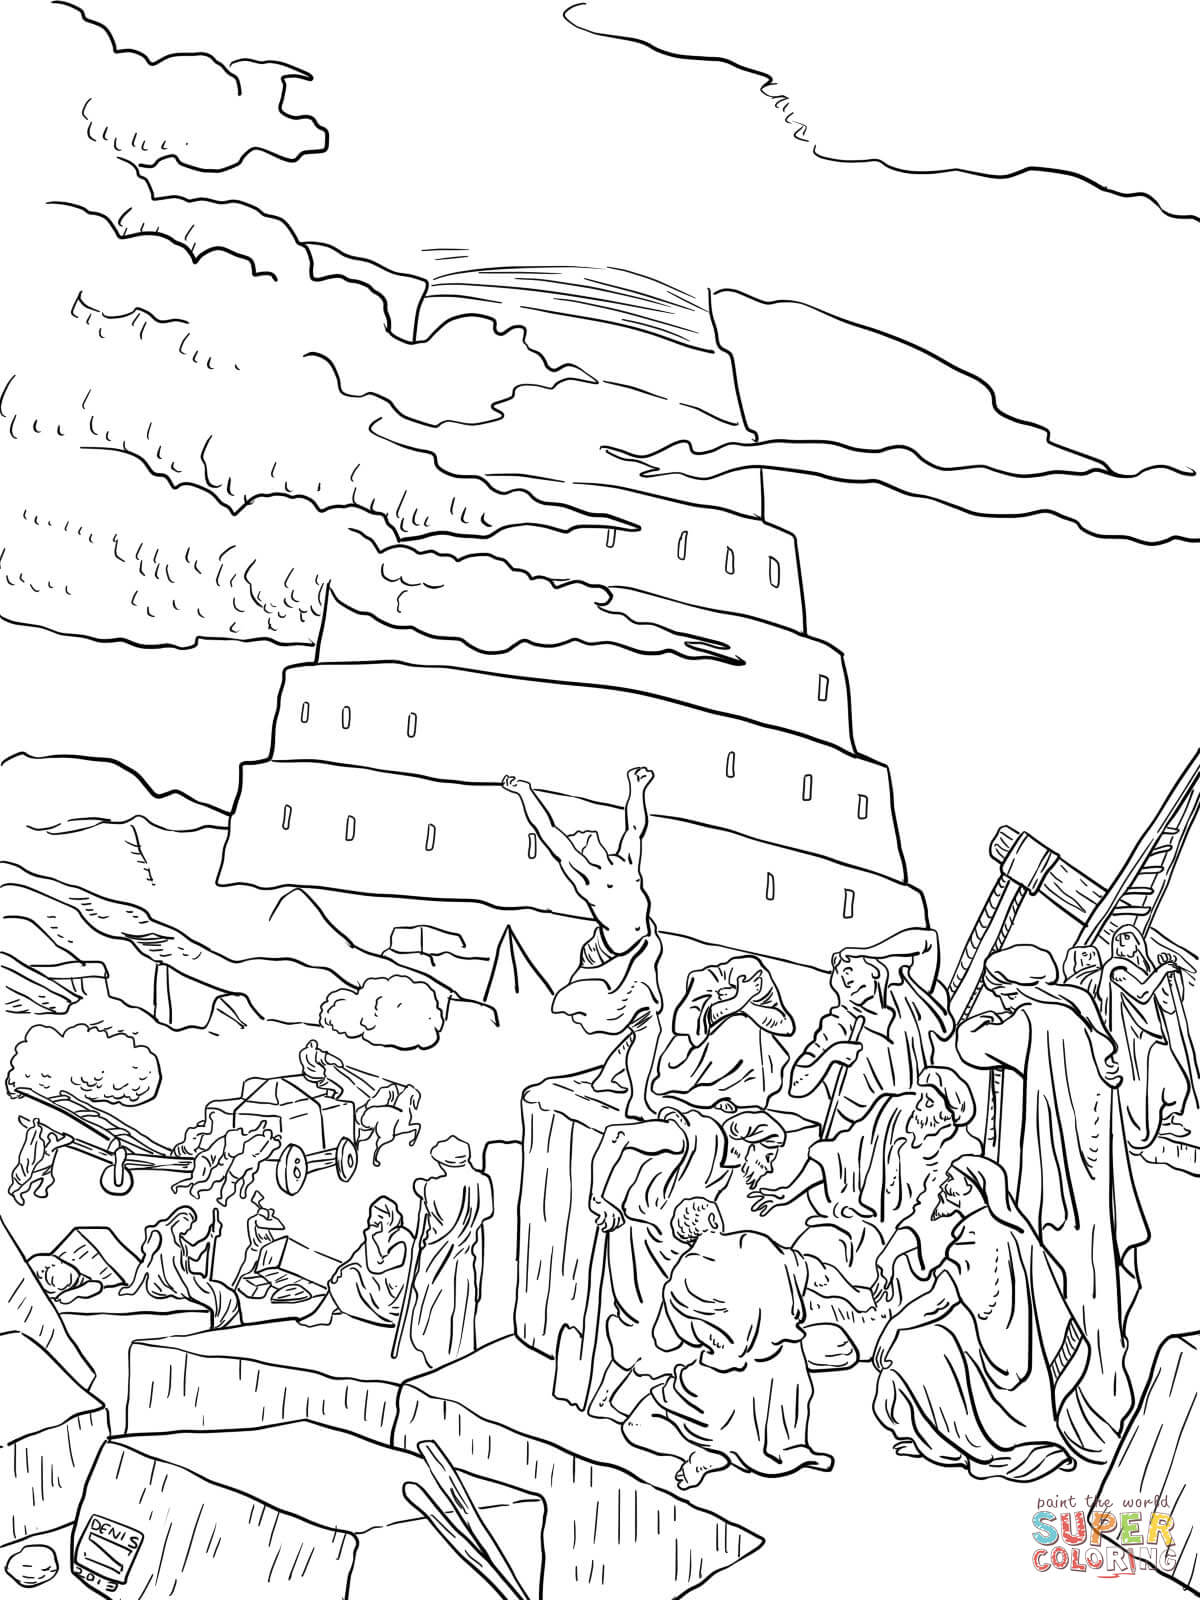 Tower of Babel and the Confusion of Tongues coloring page | Free ...